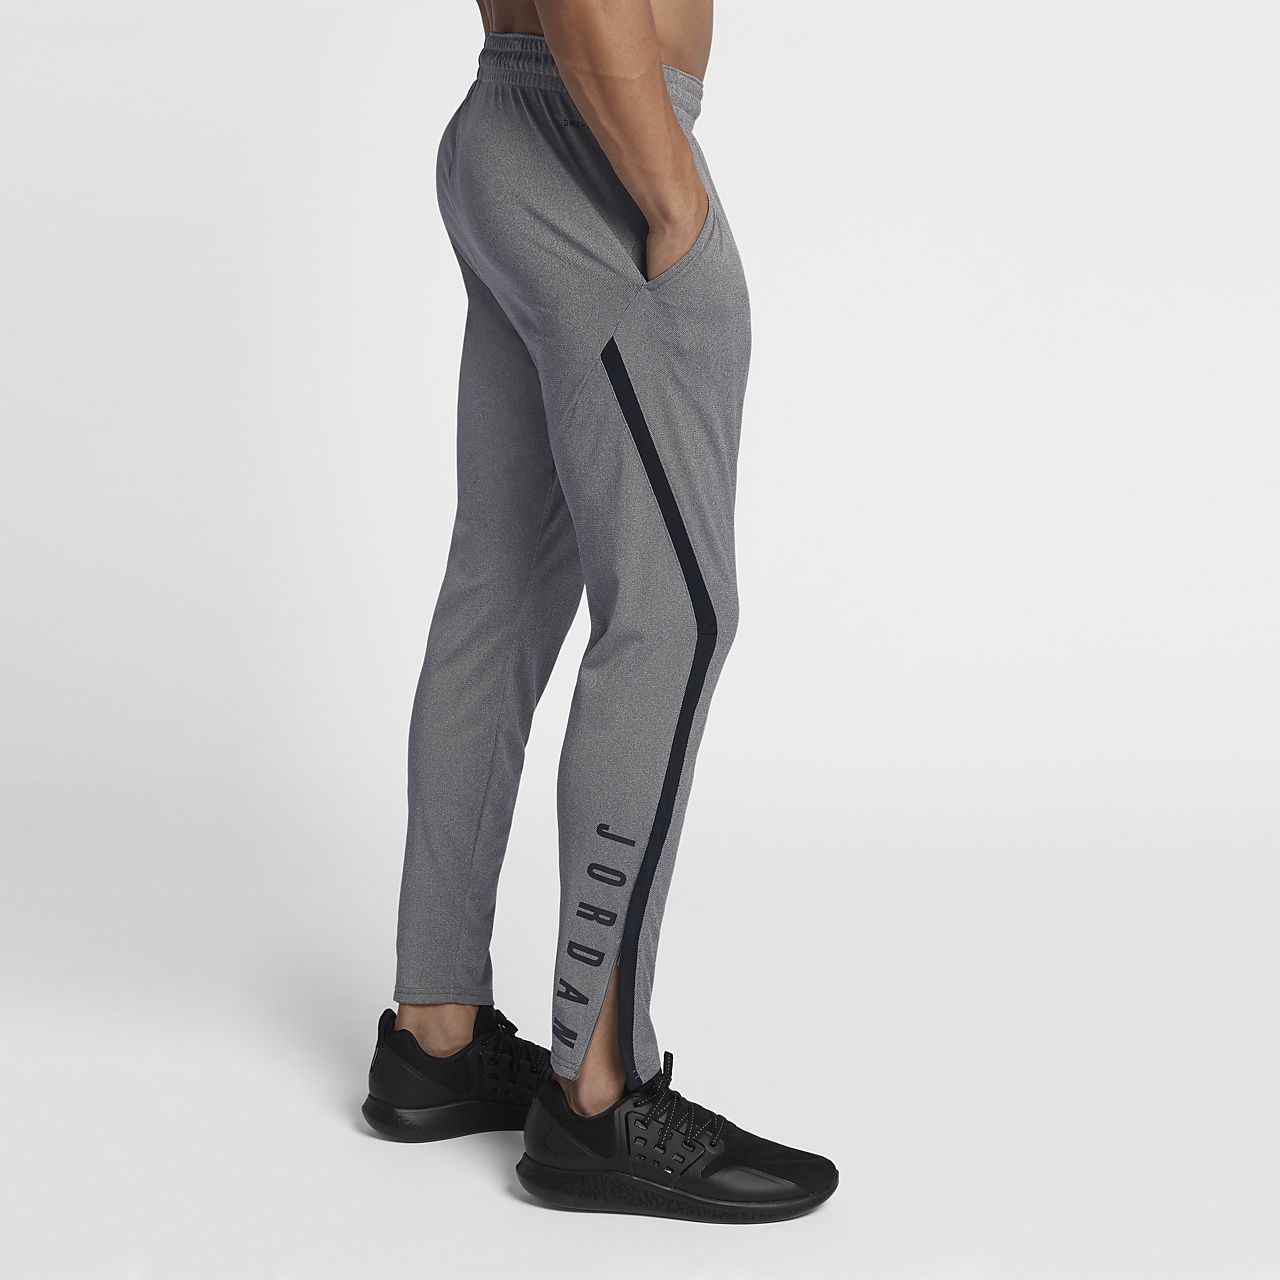 6f12937c139 Jordan Dri-FIT 23 Alpha Men's Basketball Pants. Nike.com